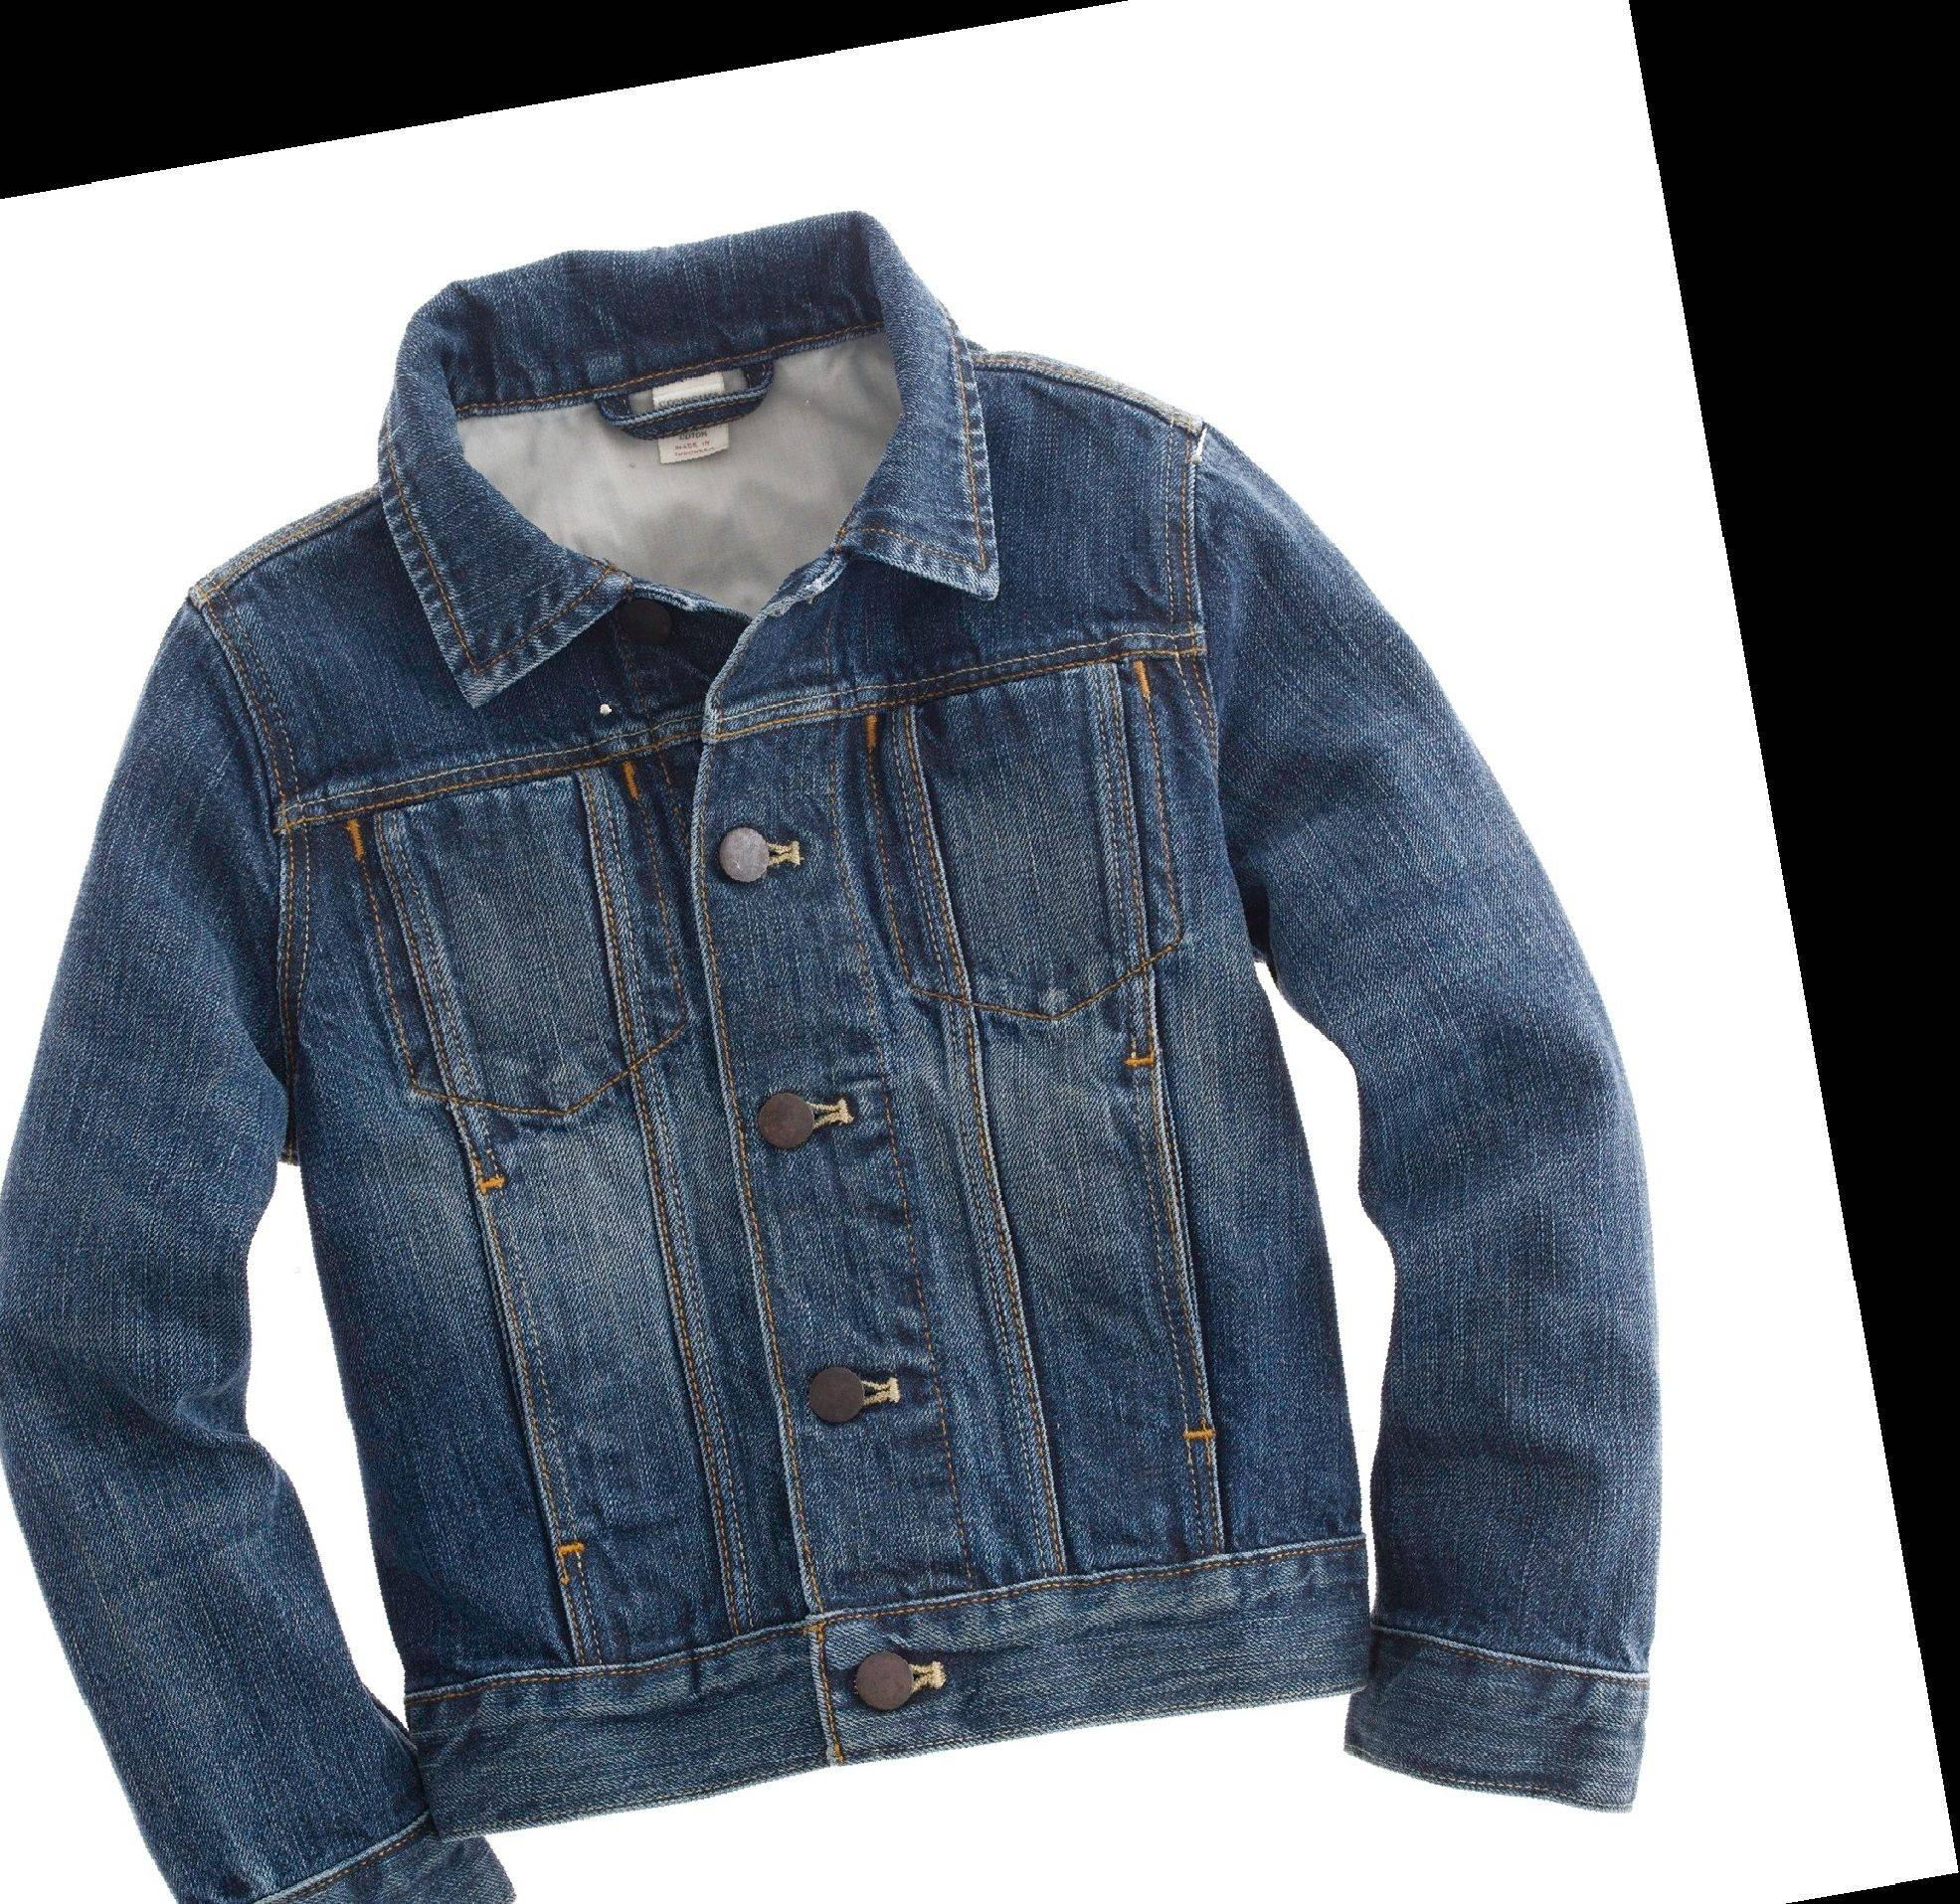 Denim jackets can add a fun edge to any outfit and are trendy for girls of all ages. $128 at J. Crew, jcrew.com